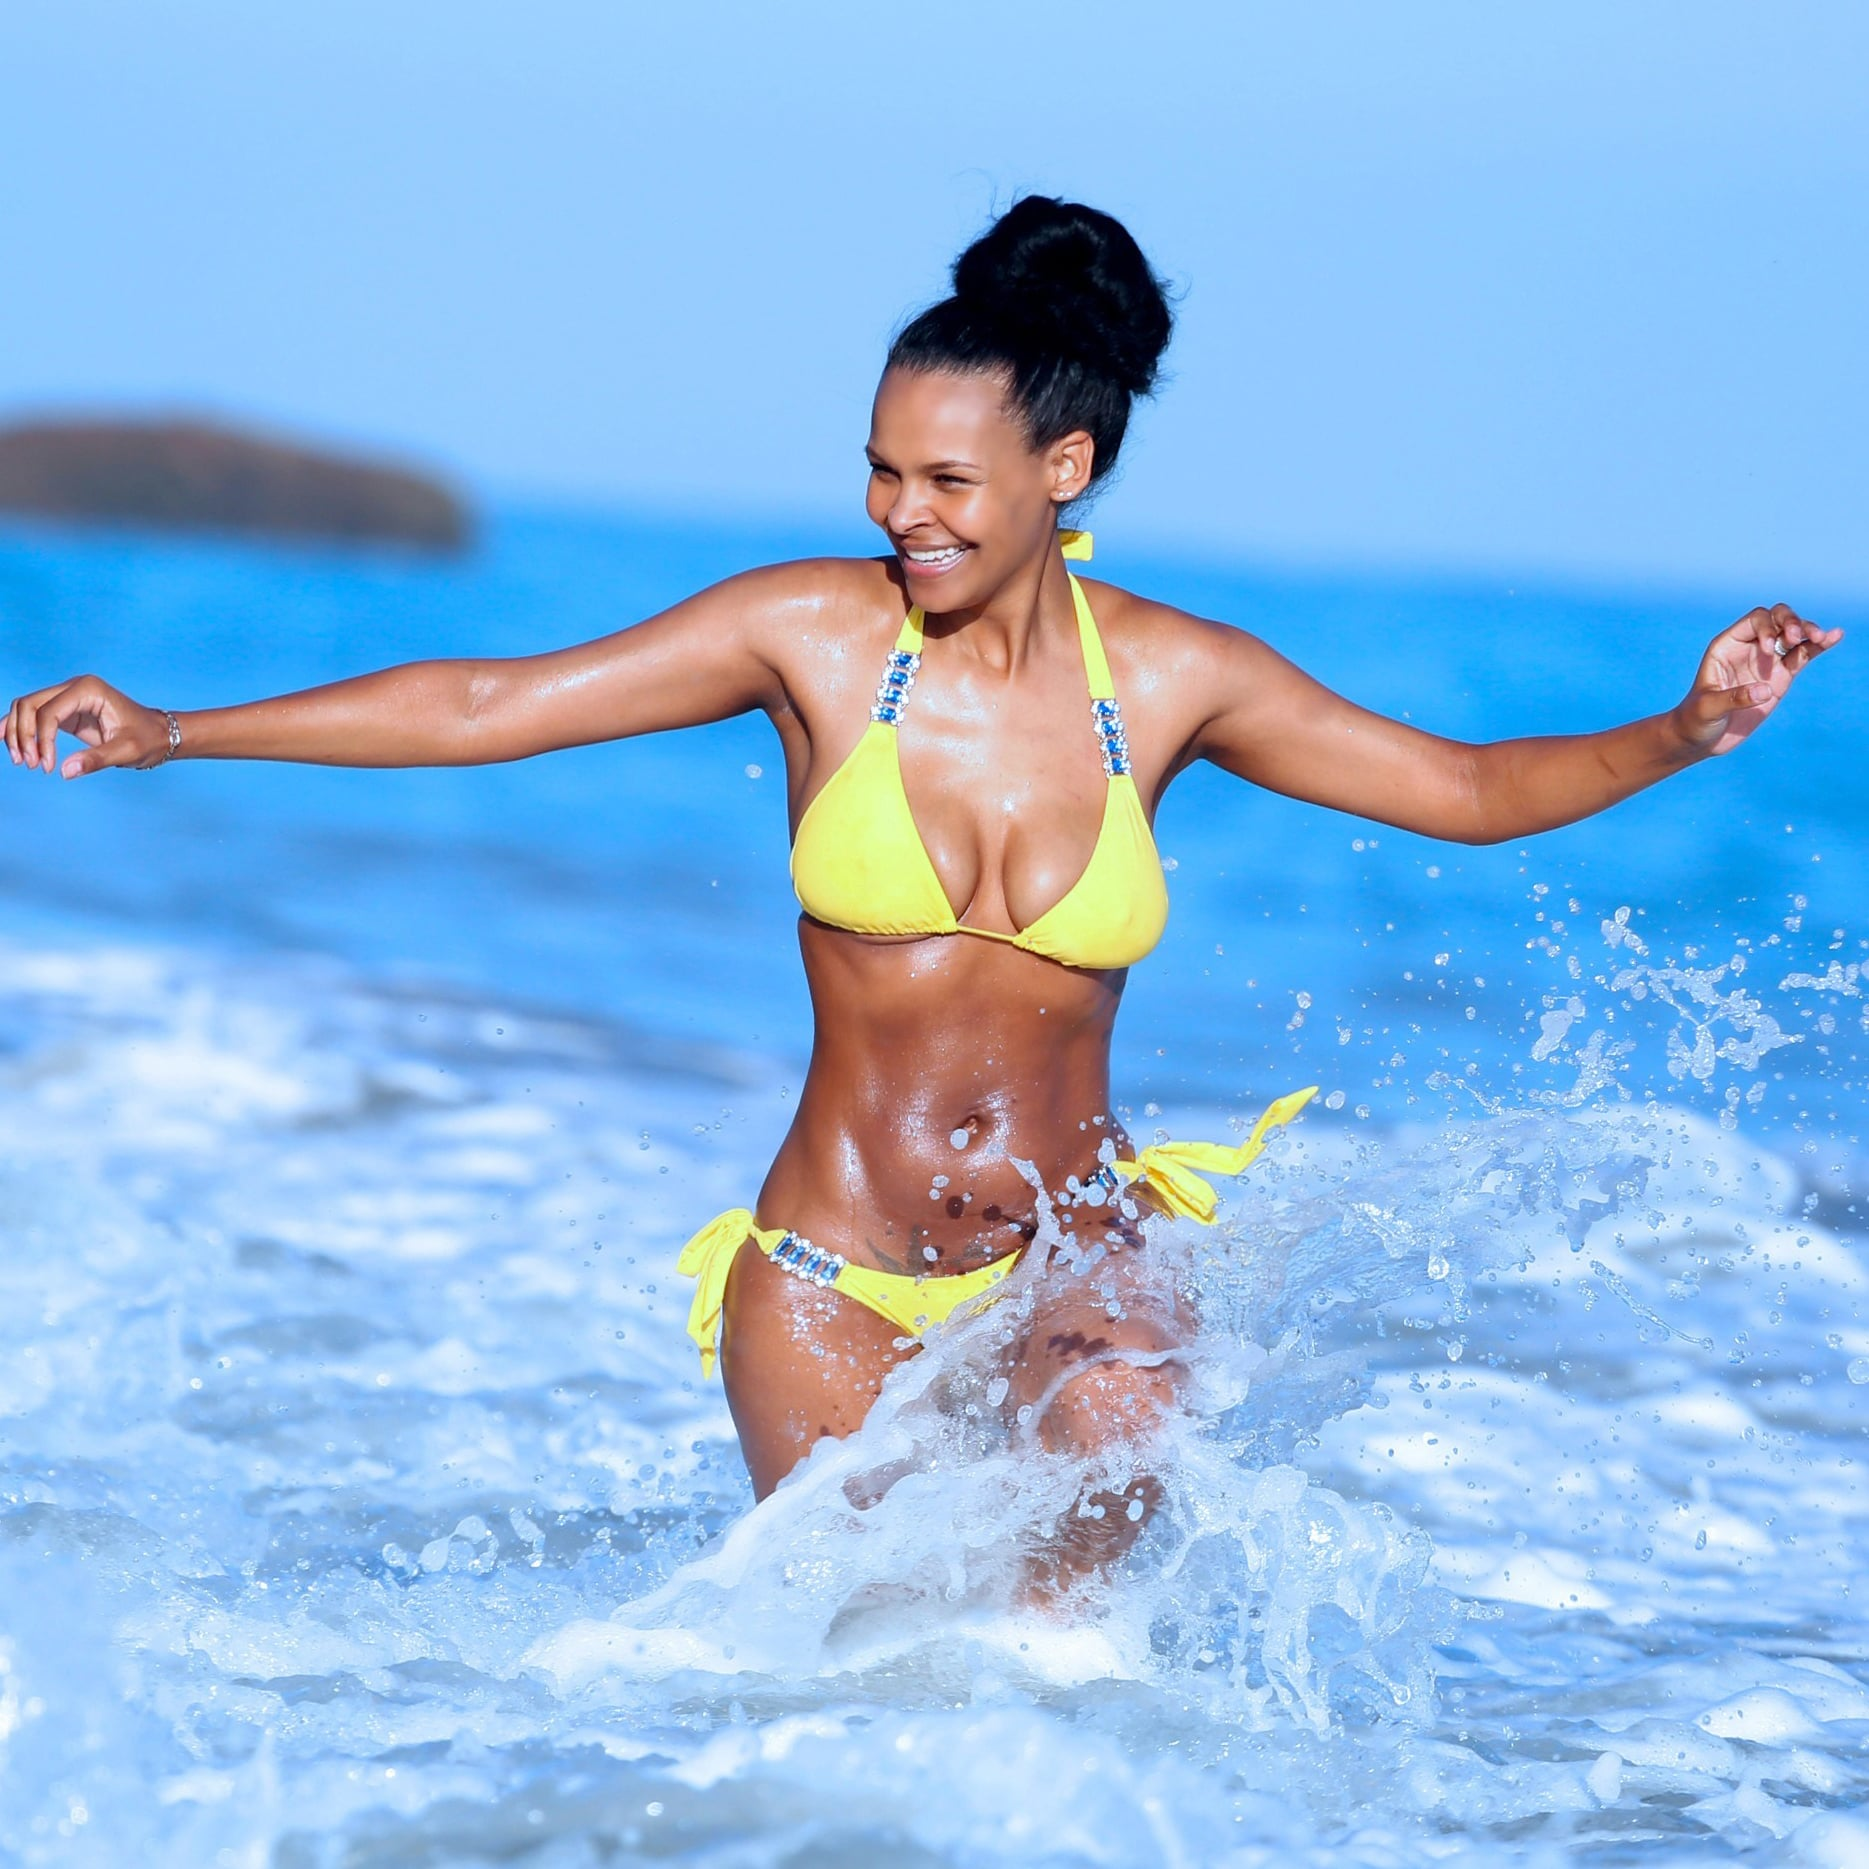 photo Samantha mumba pics in bikini